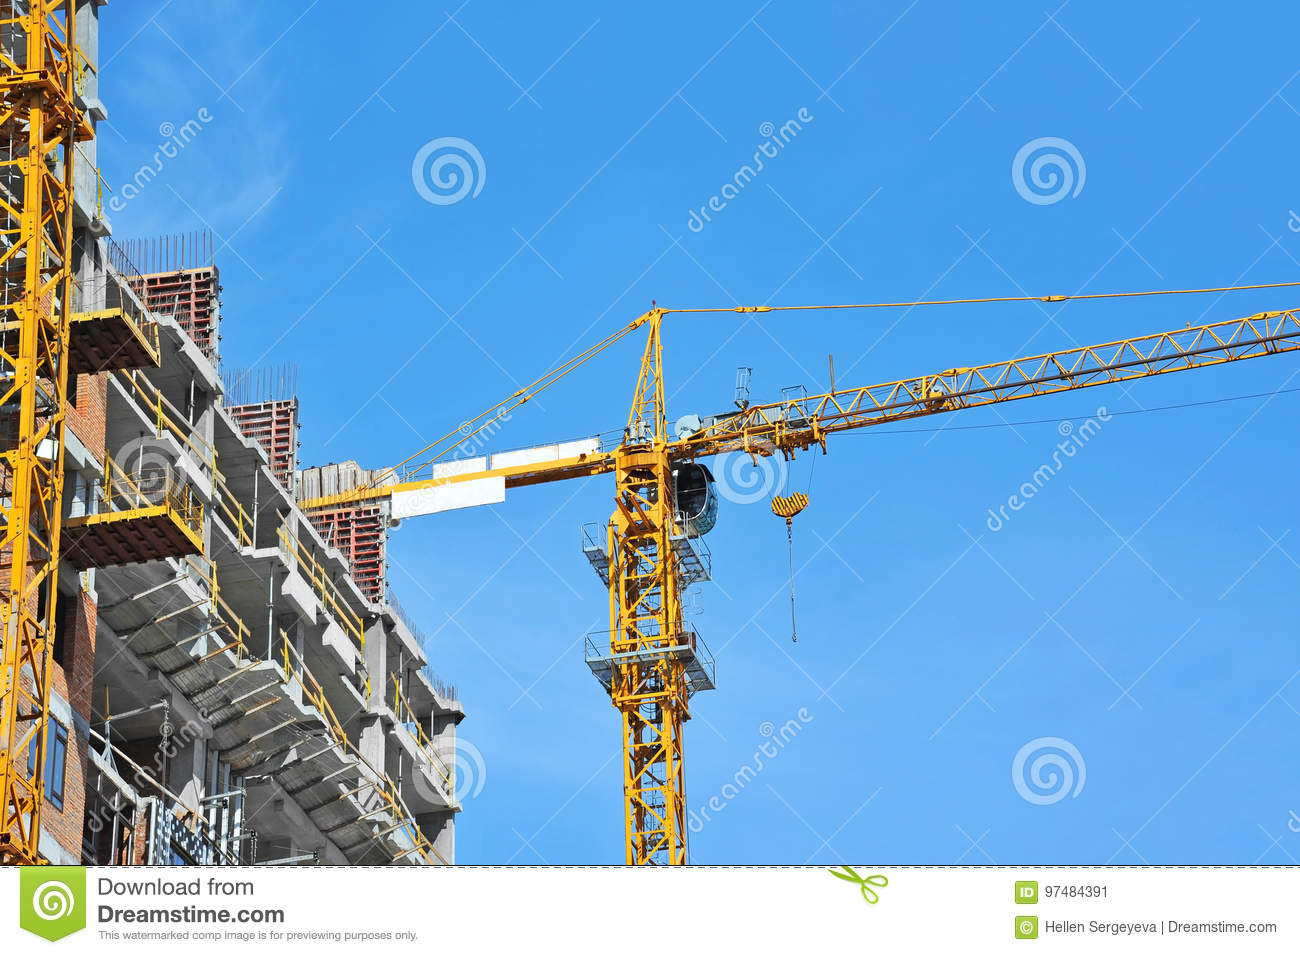 Chantier de construction de grue et de highrise